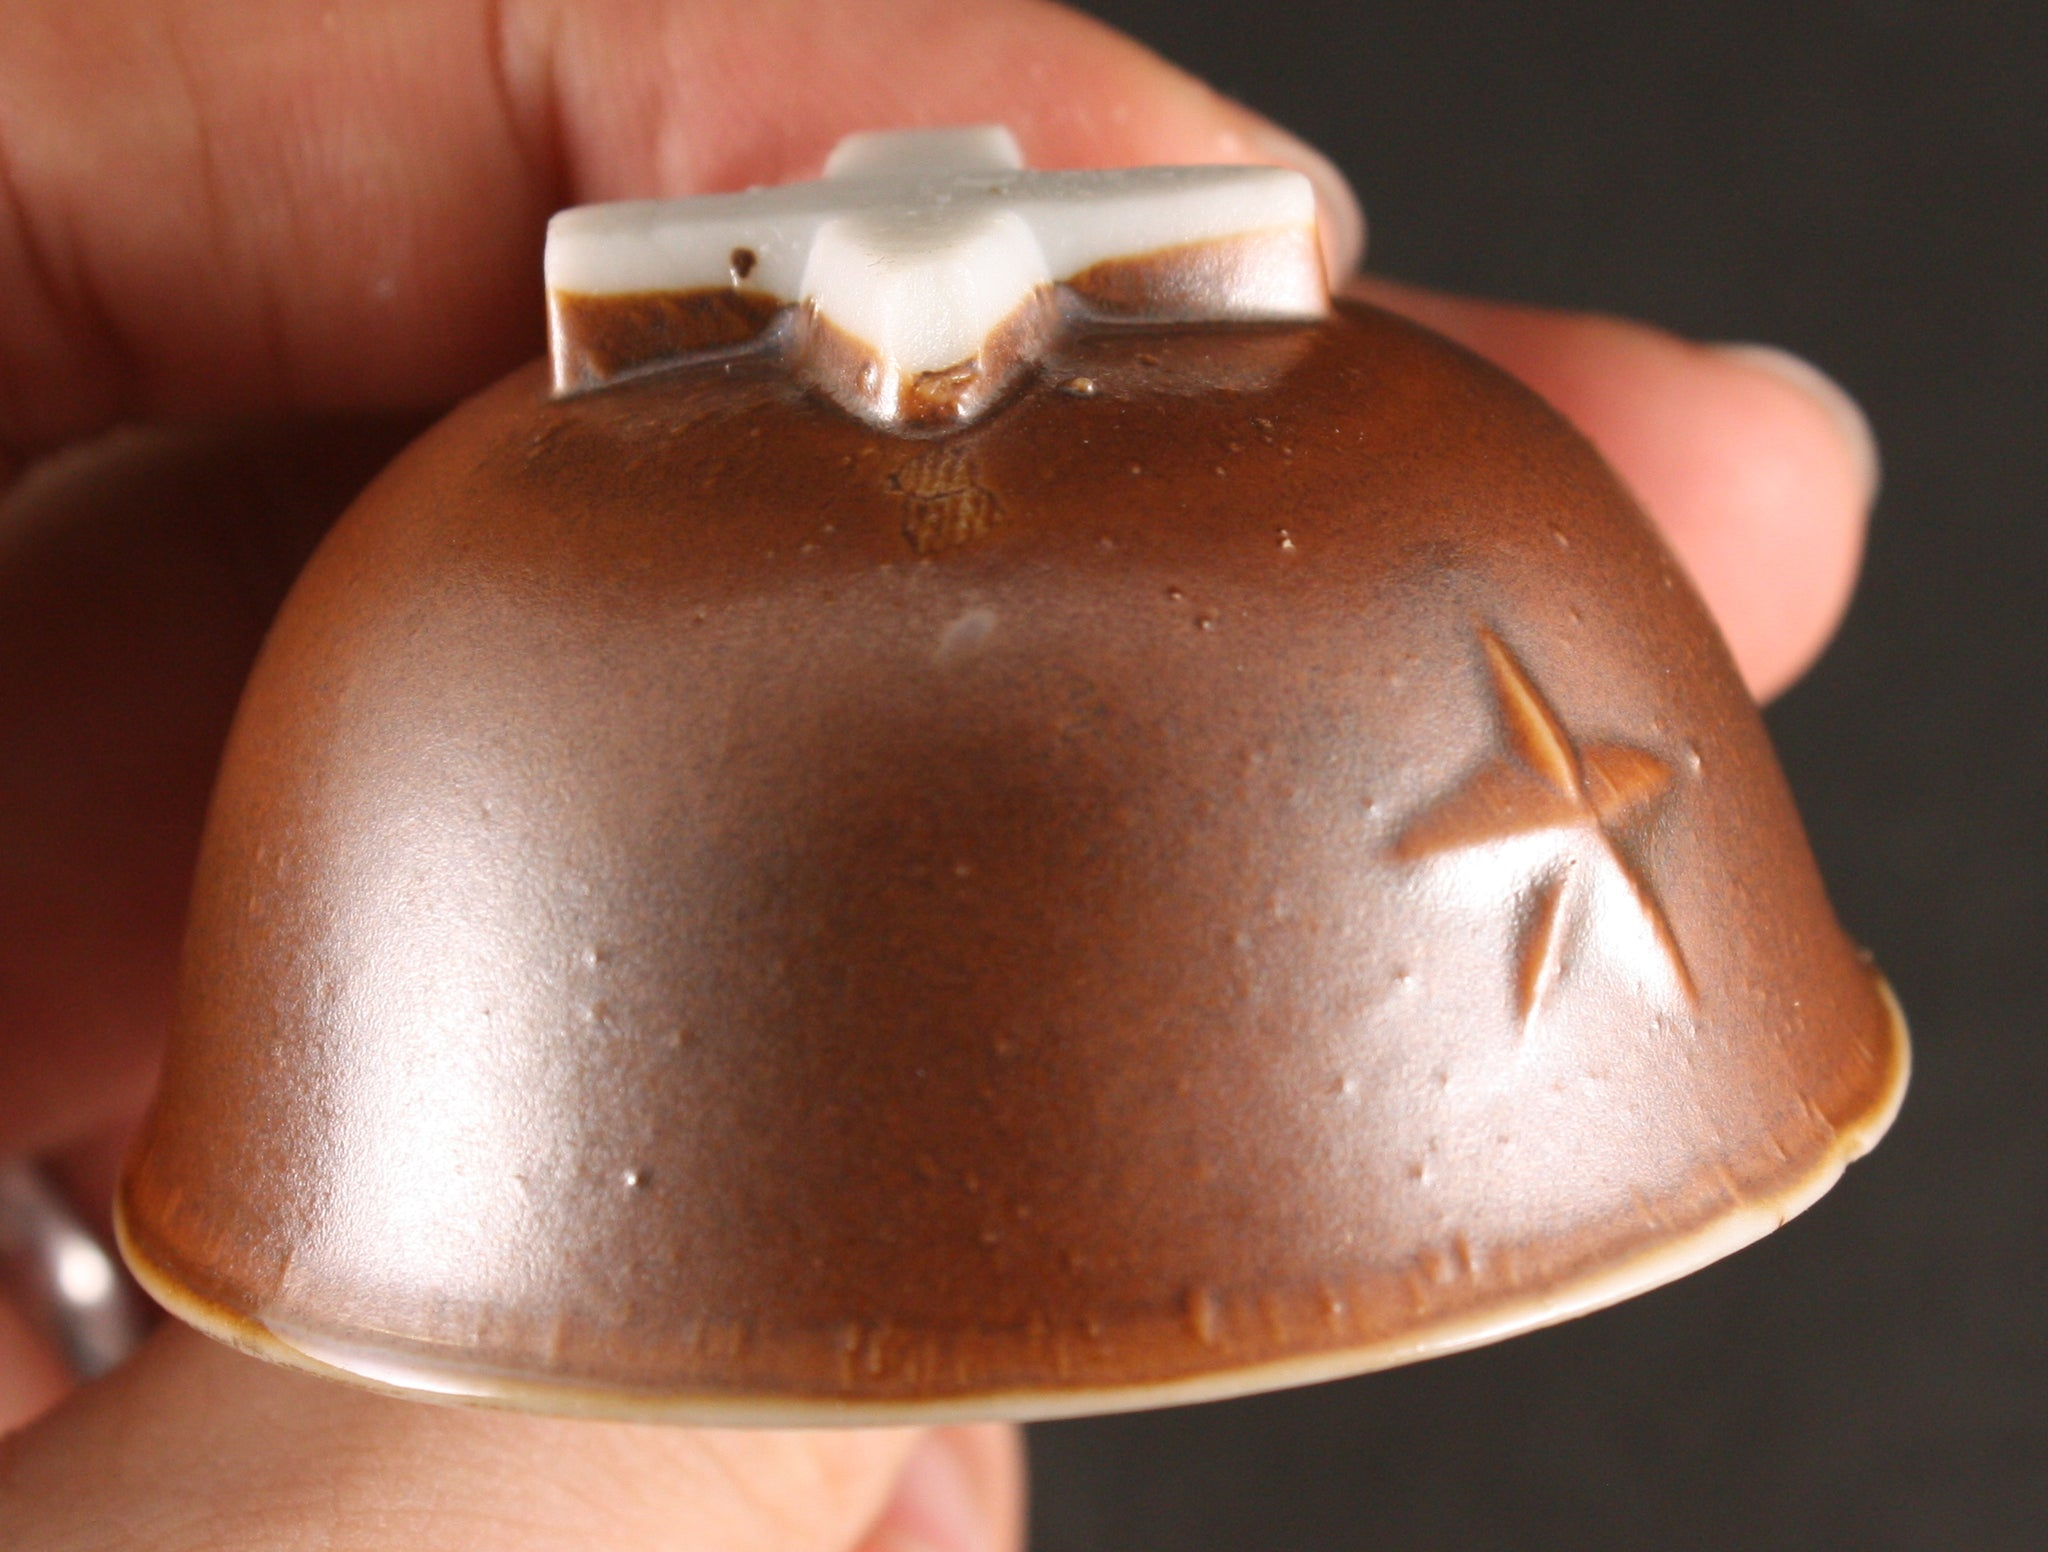 Antique Japanese Military Prone Soldier Attack Helmet Army Sake Cup